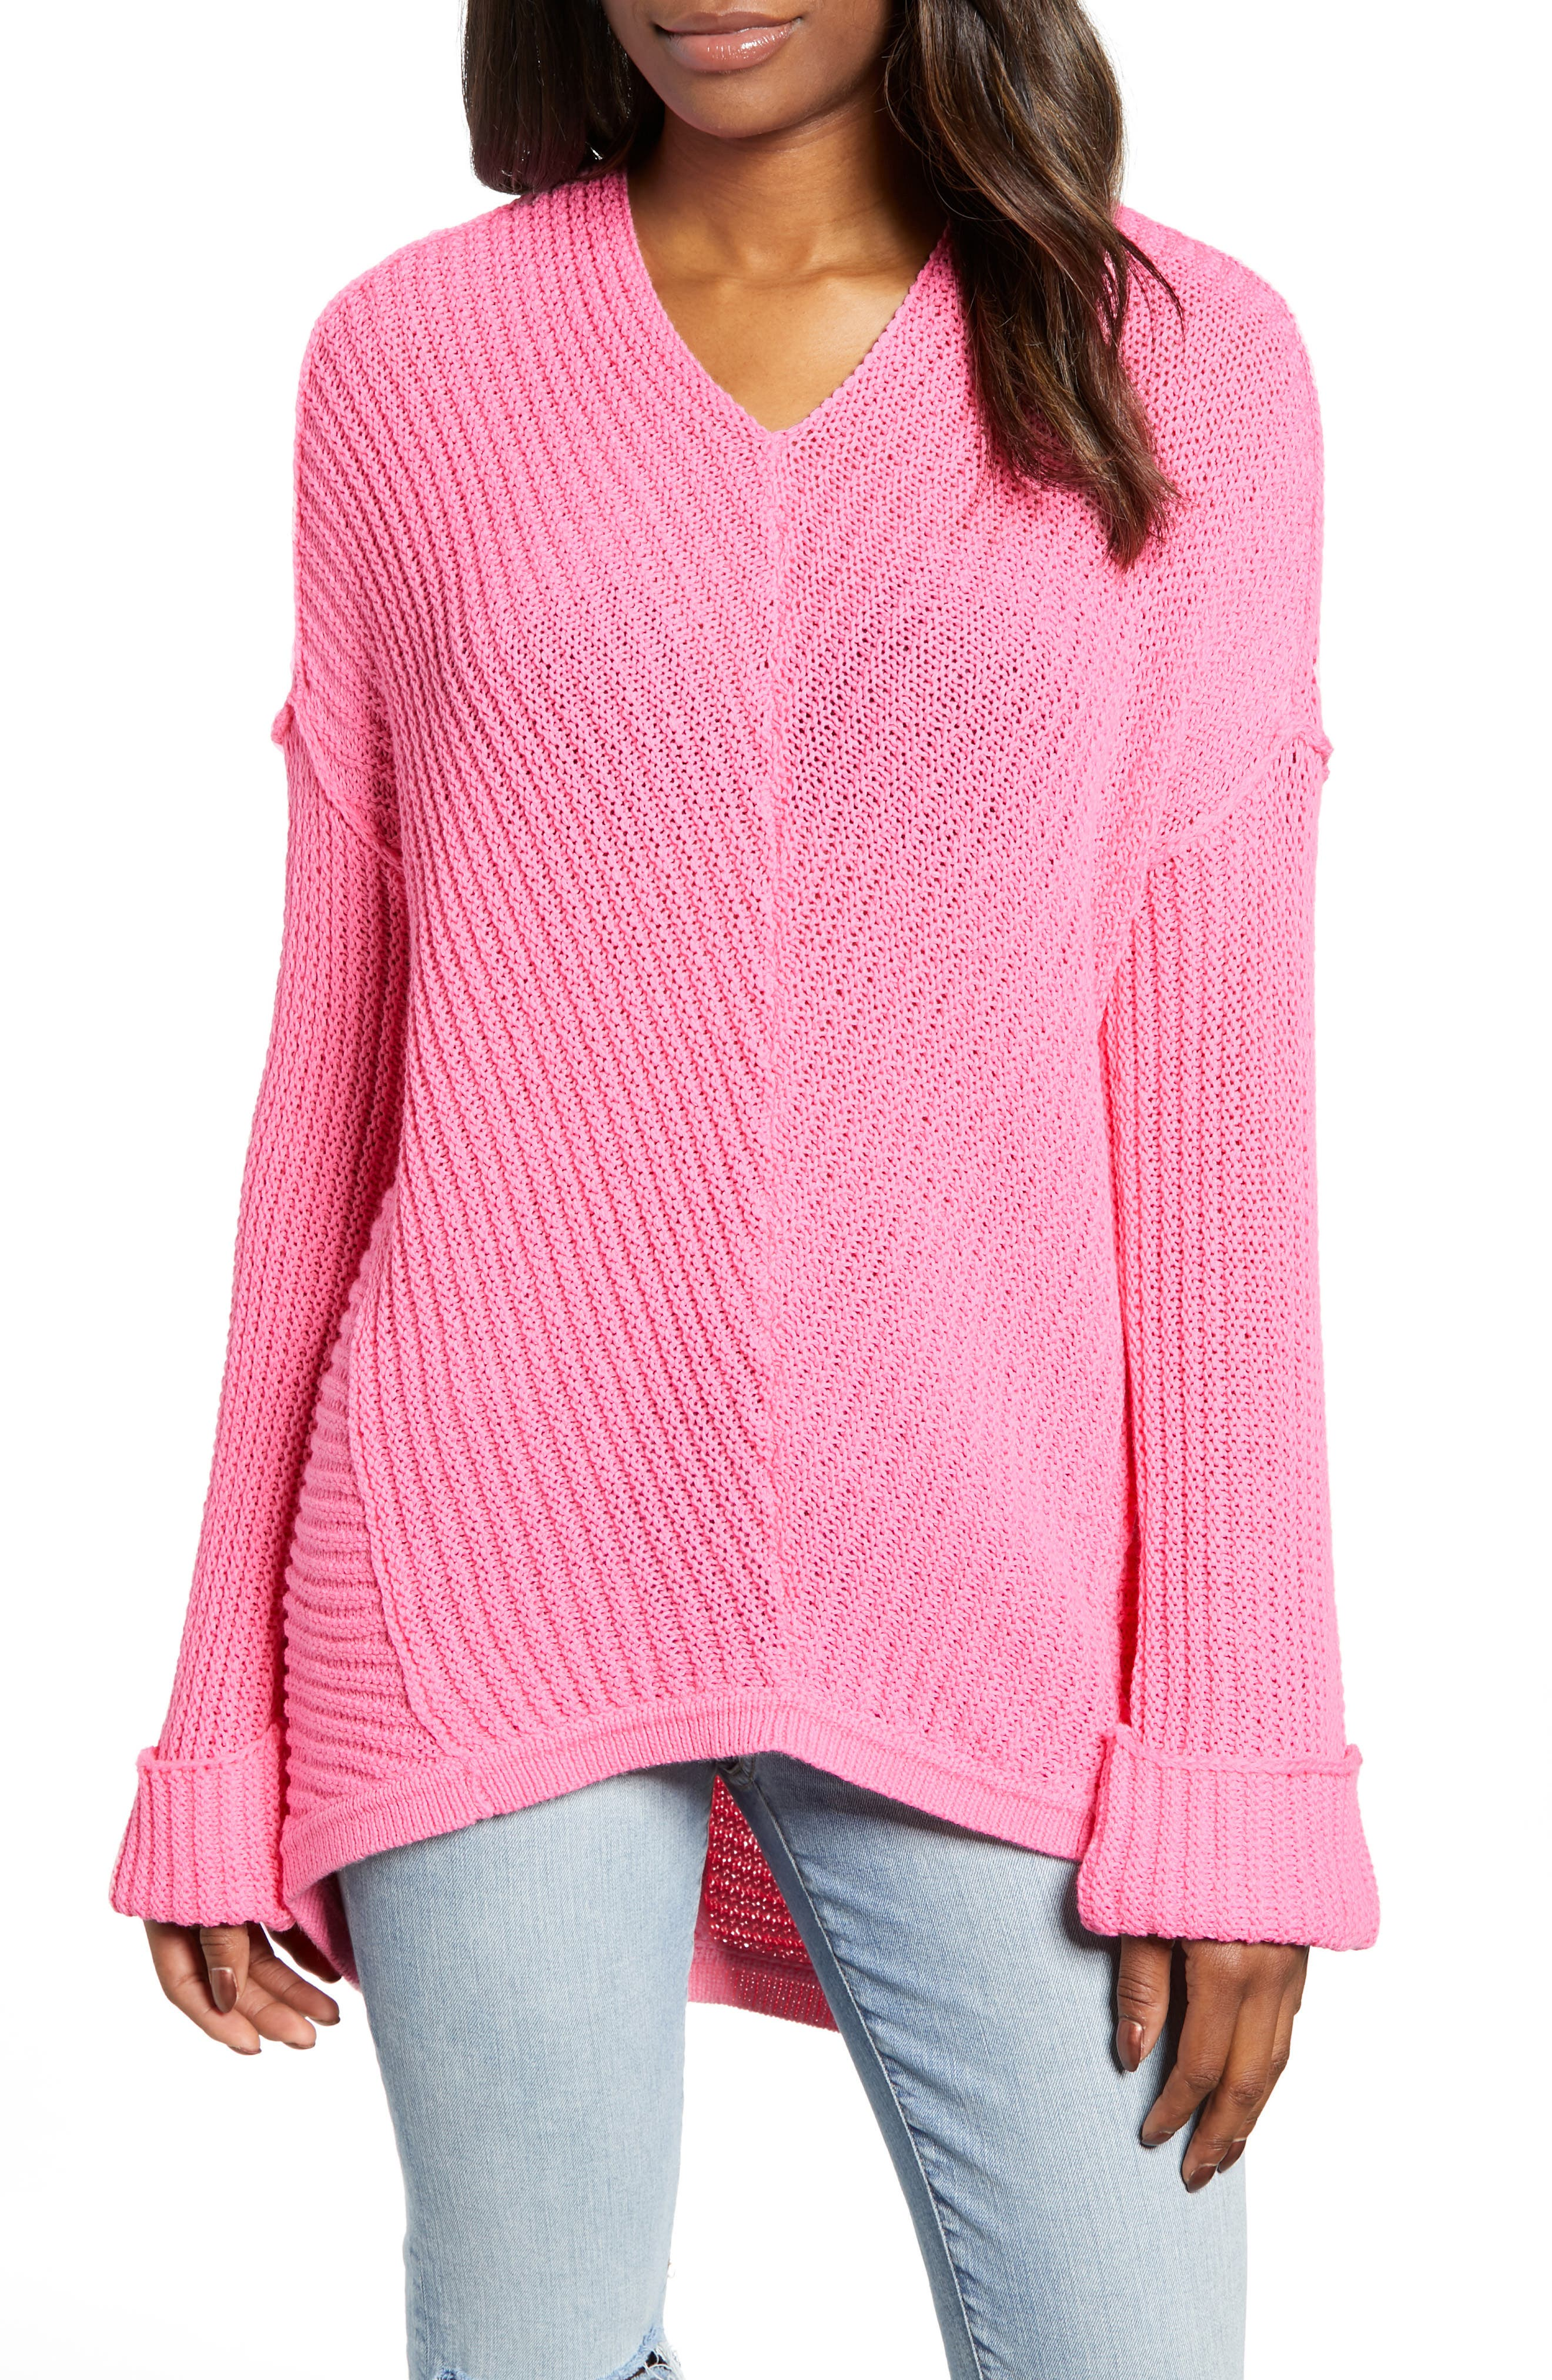 CASLON<SUP>®</SUP>, Cuffed Sleeve Sweater, Main thumbnail 1, color, PINK SACHET